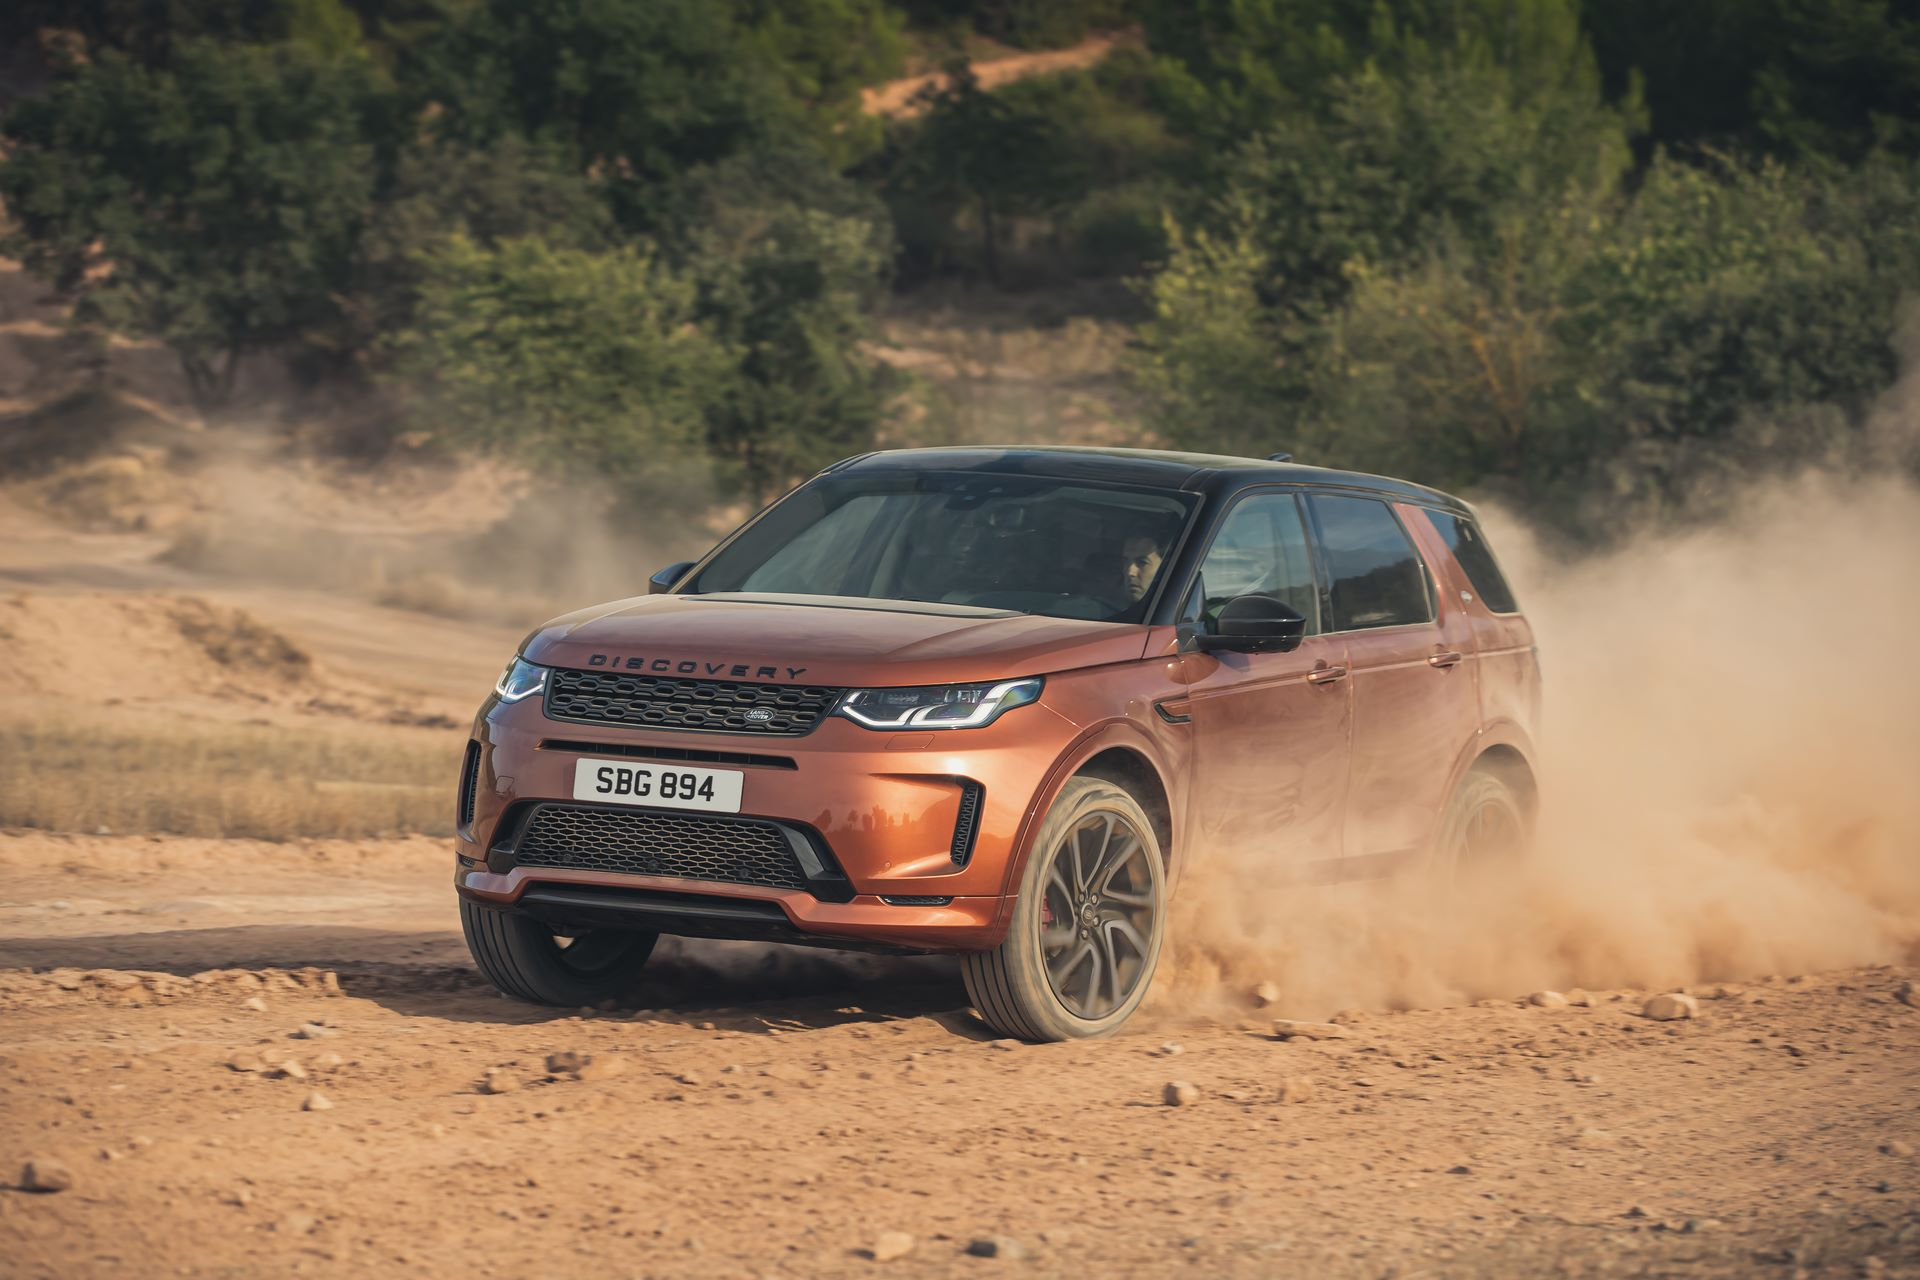 Range-Rover-Evoque-and-Land-Rover-Discovery-Sport-MHEV-diesel-4